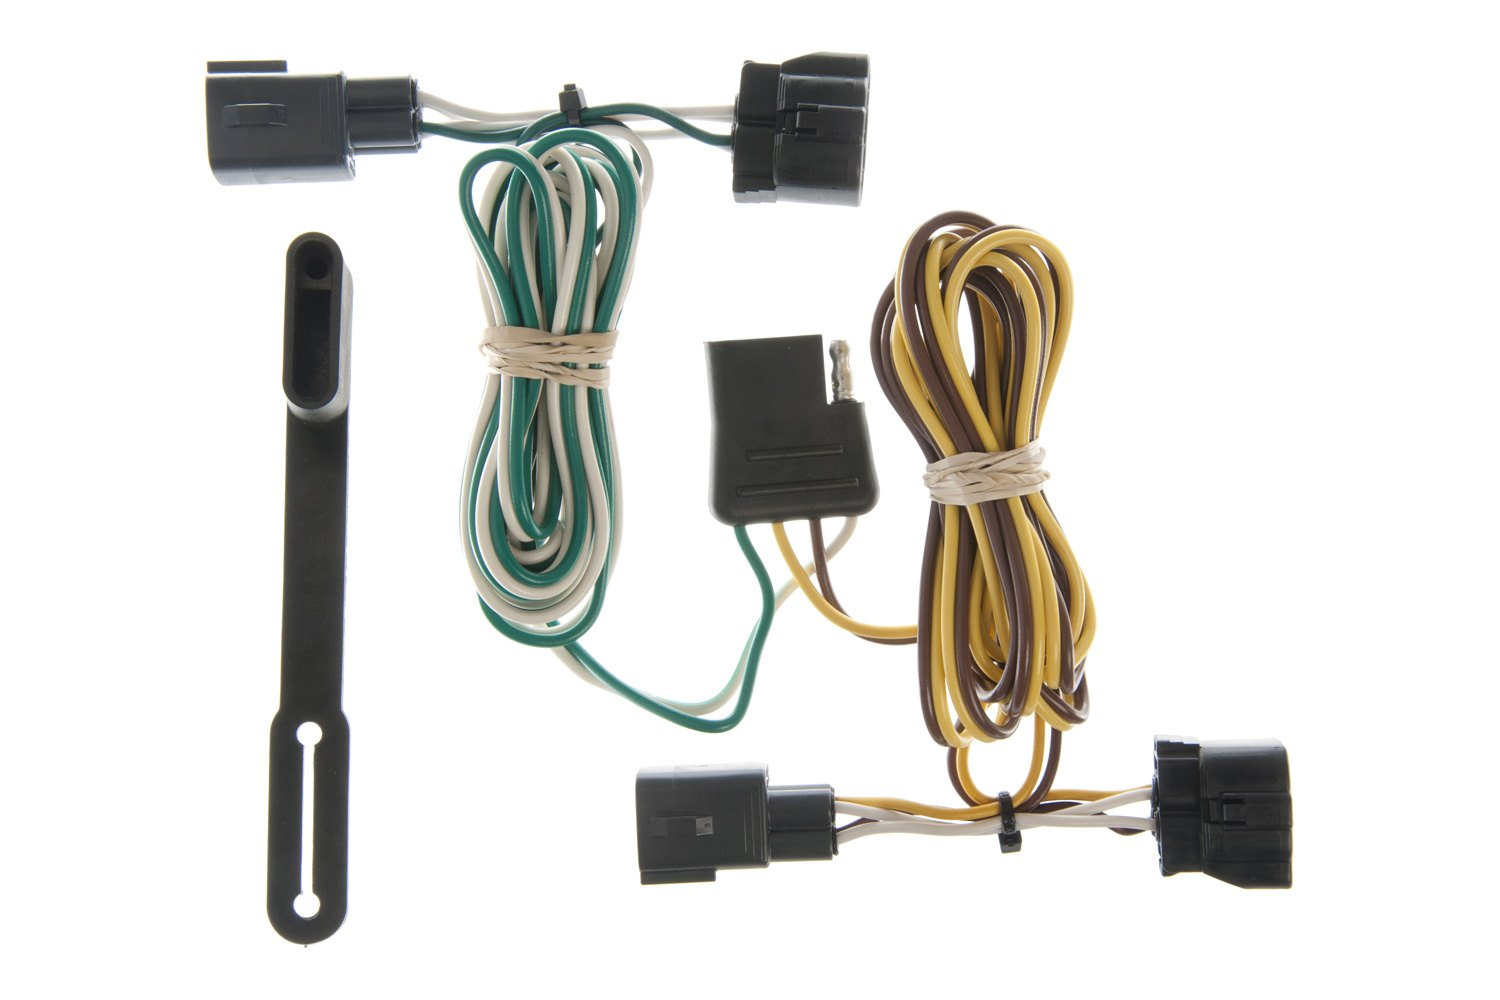 hight resolution of 1995 chevy tail light wiring diagram 1995 gmc tail light wiring diagram chevrolet tail light wiring